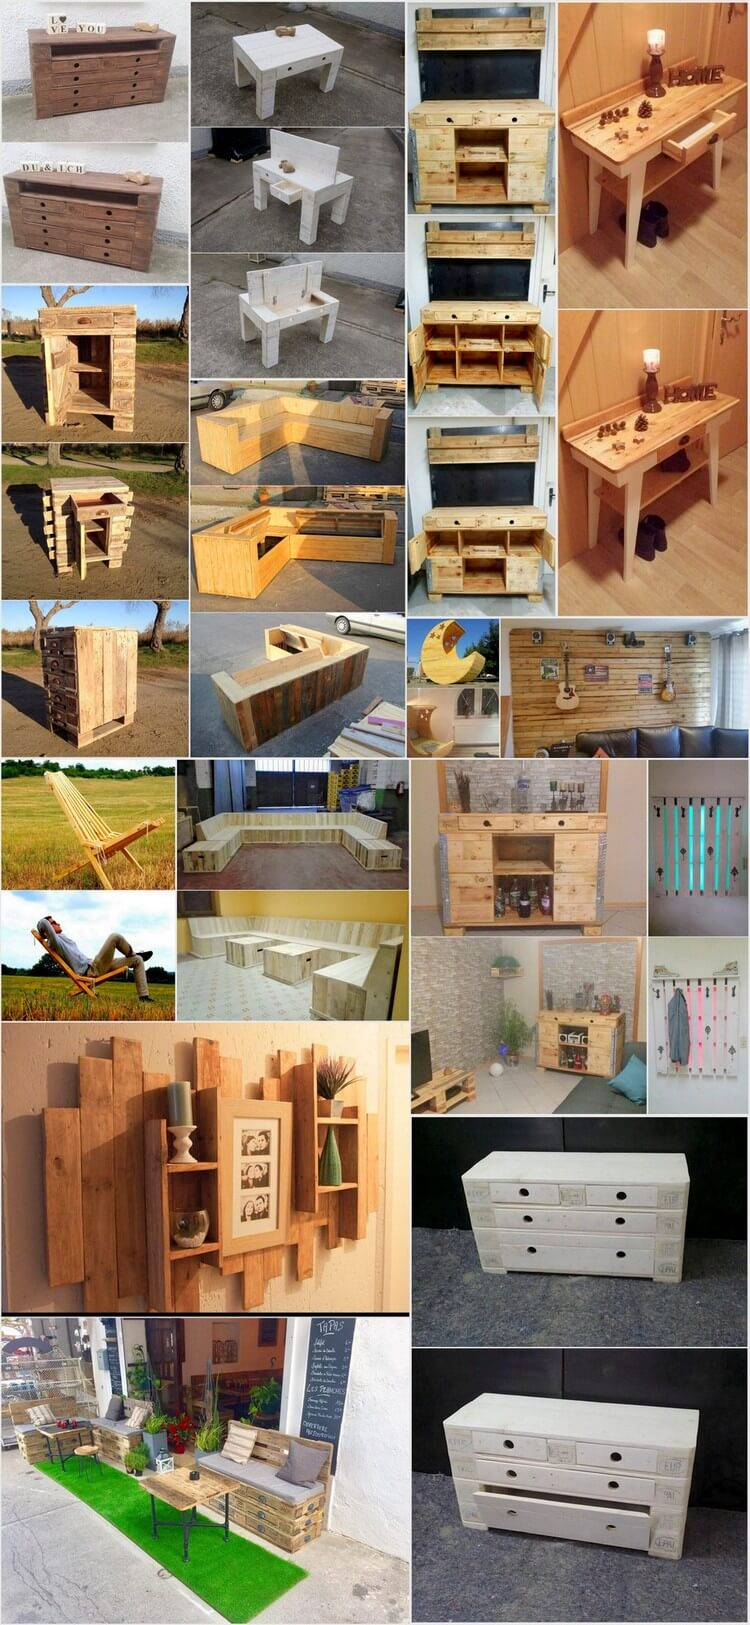 Amazing Creations with Recycled Wooden Pallets